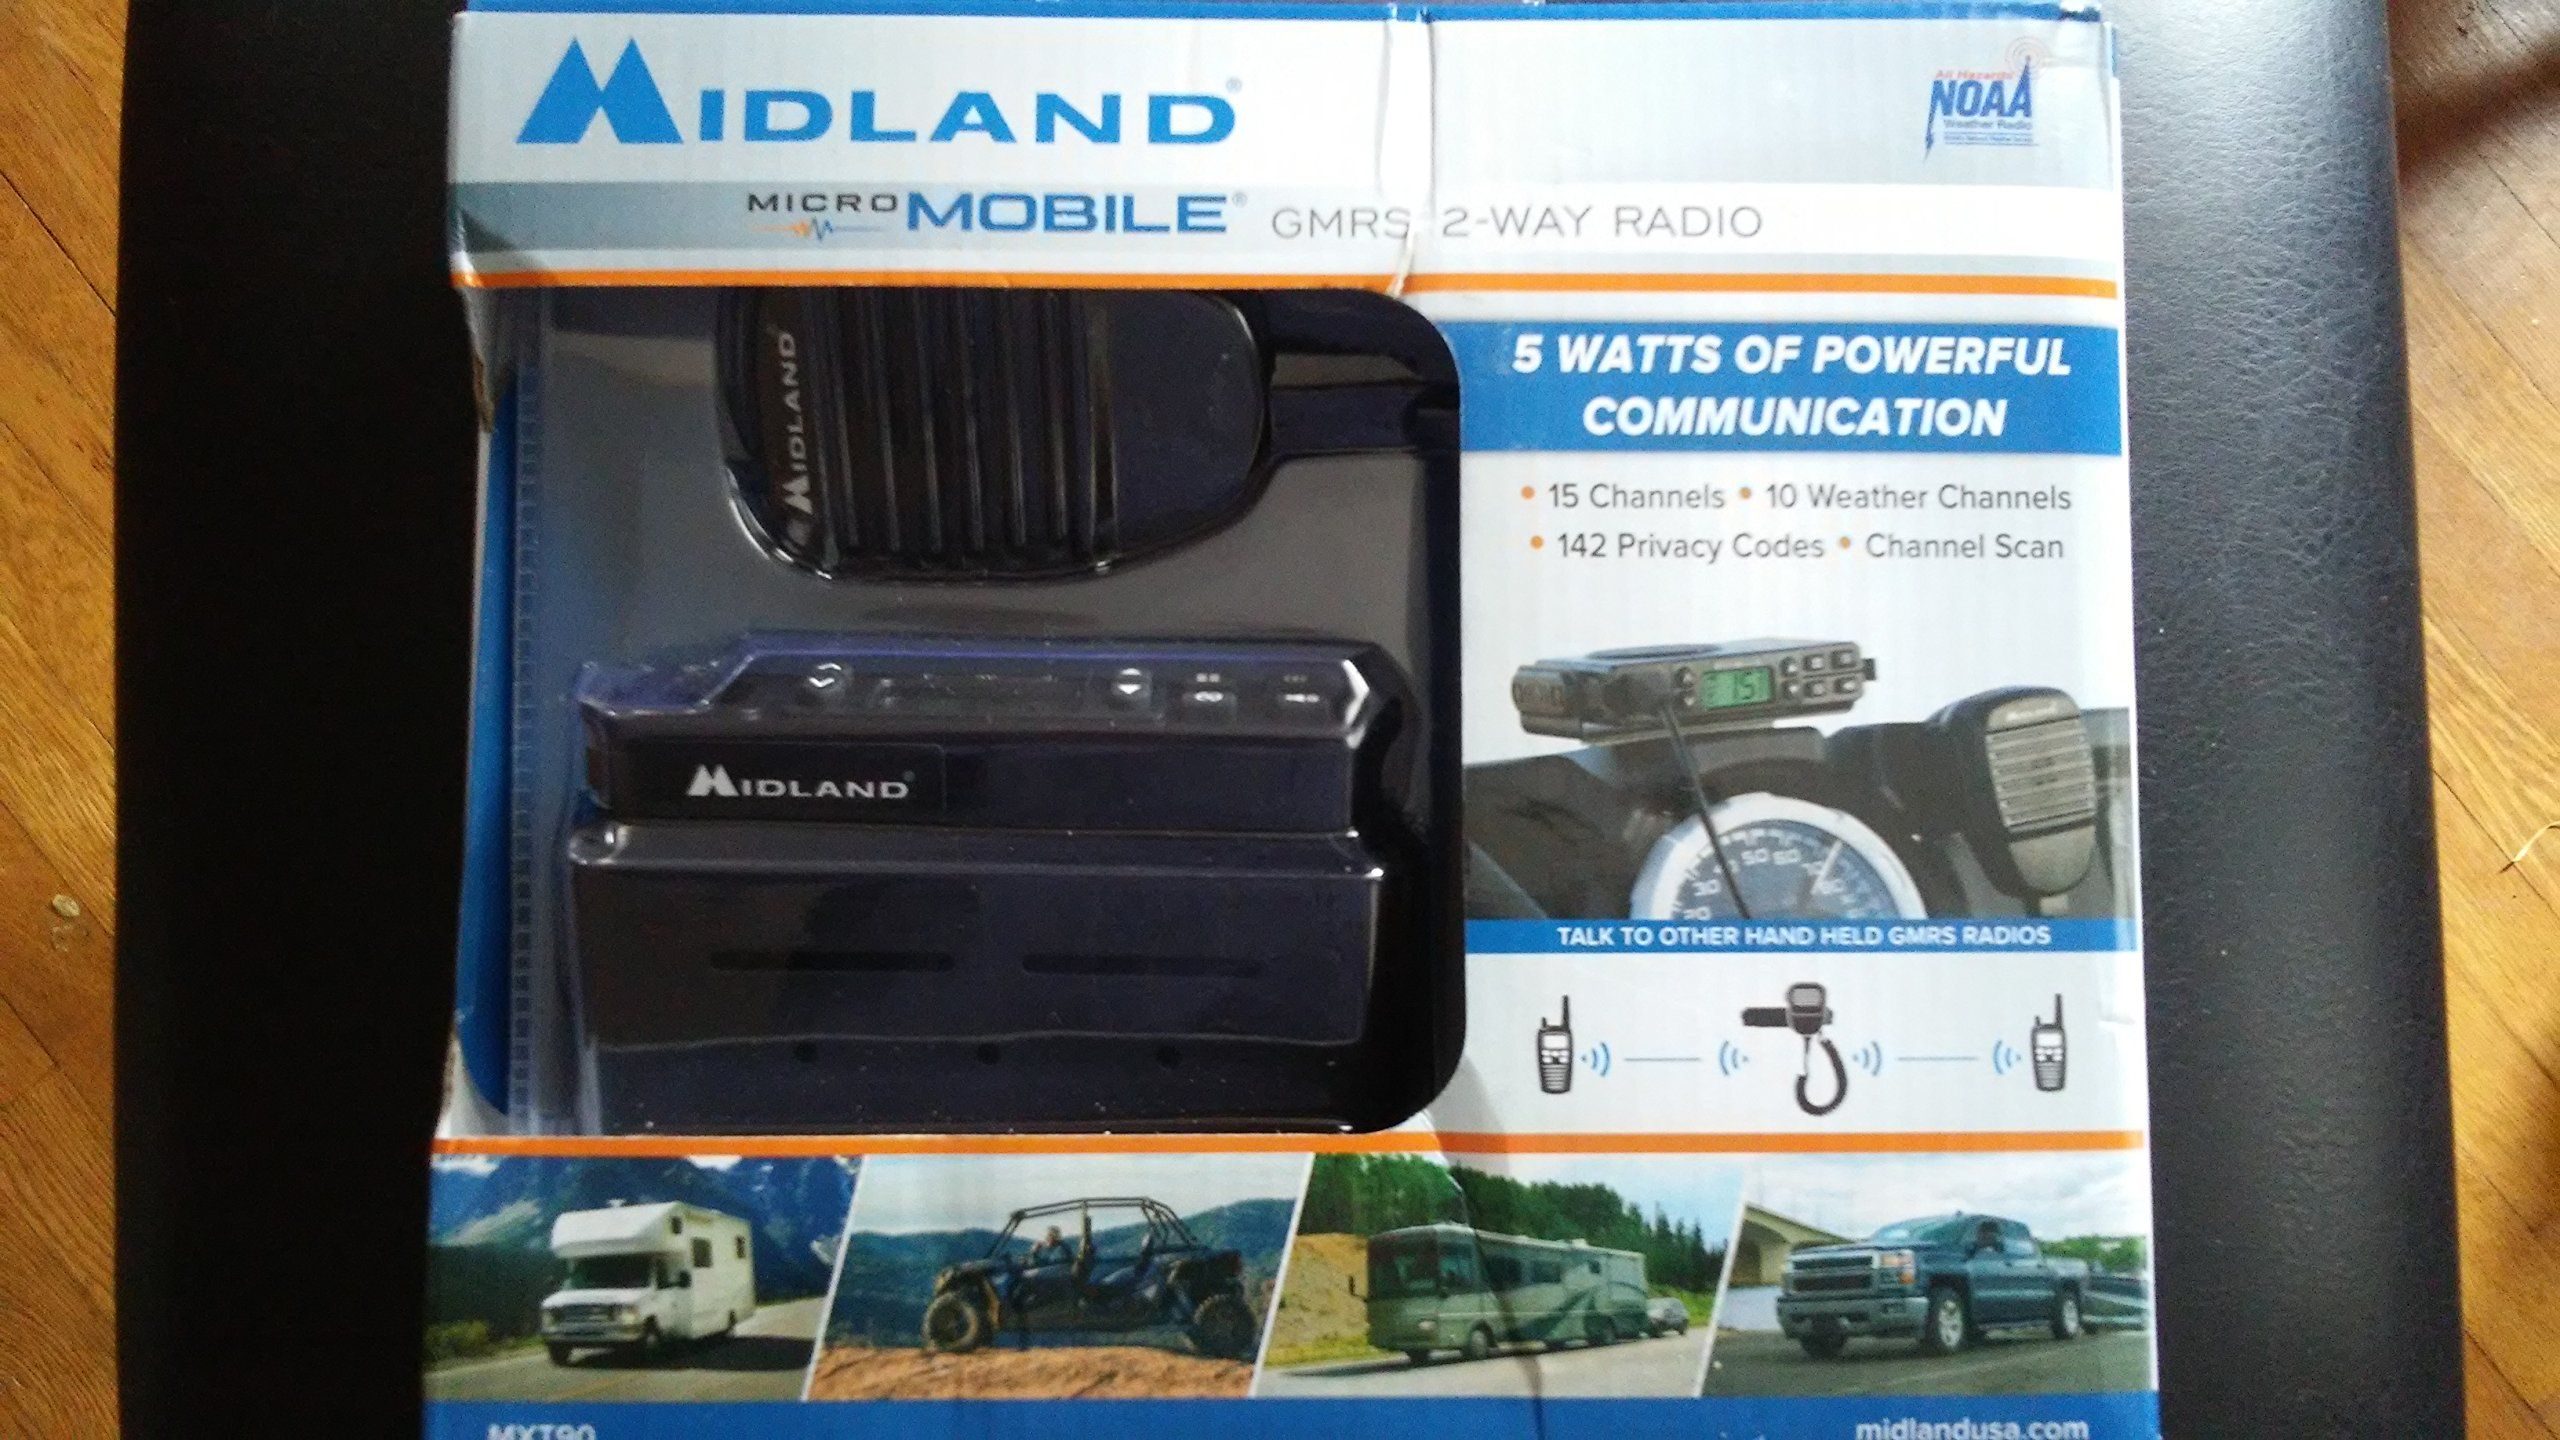 Midland micro mobile gmrs 2way radio mxt90 with images